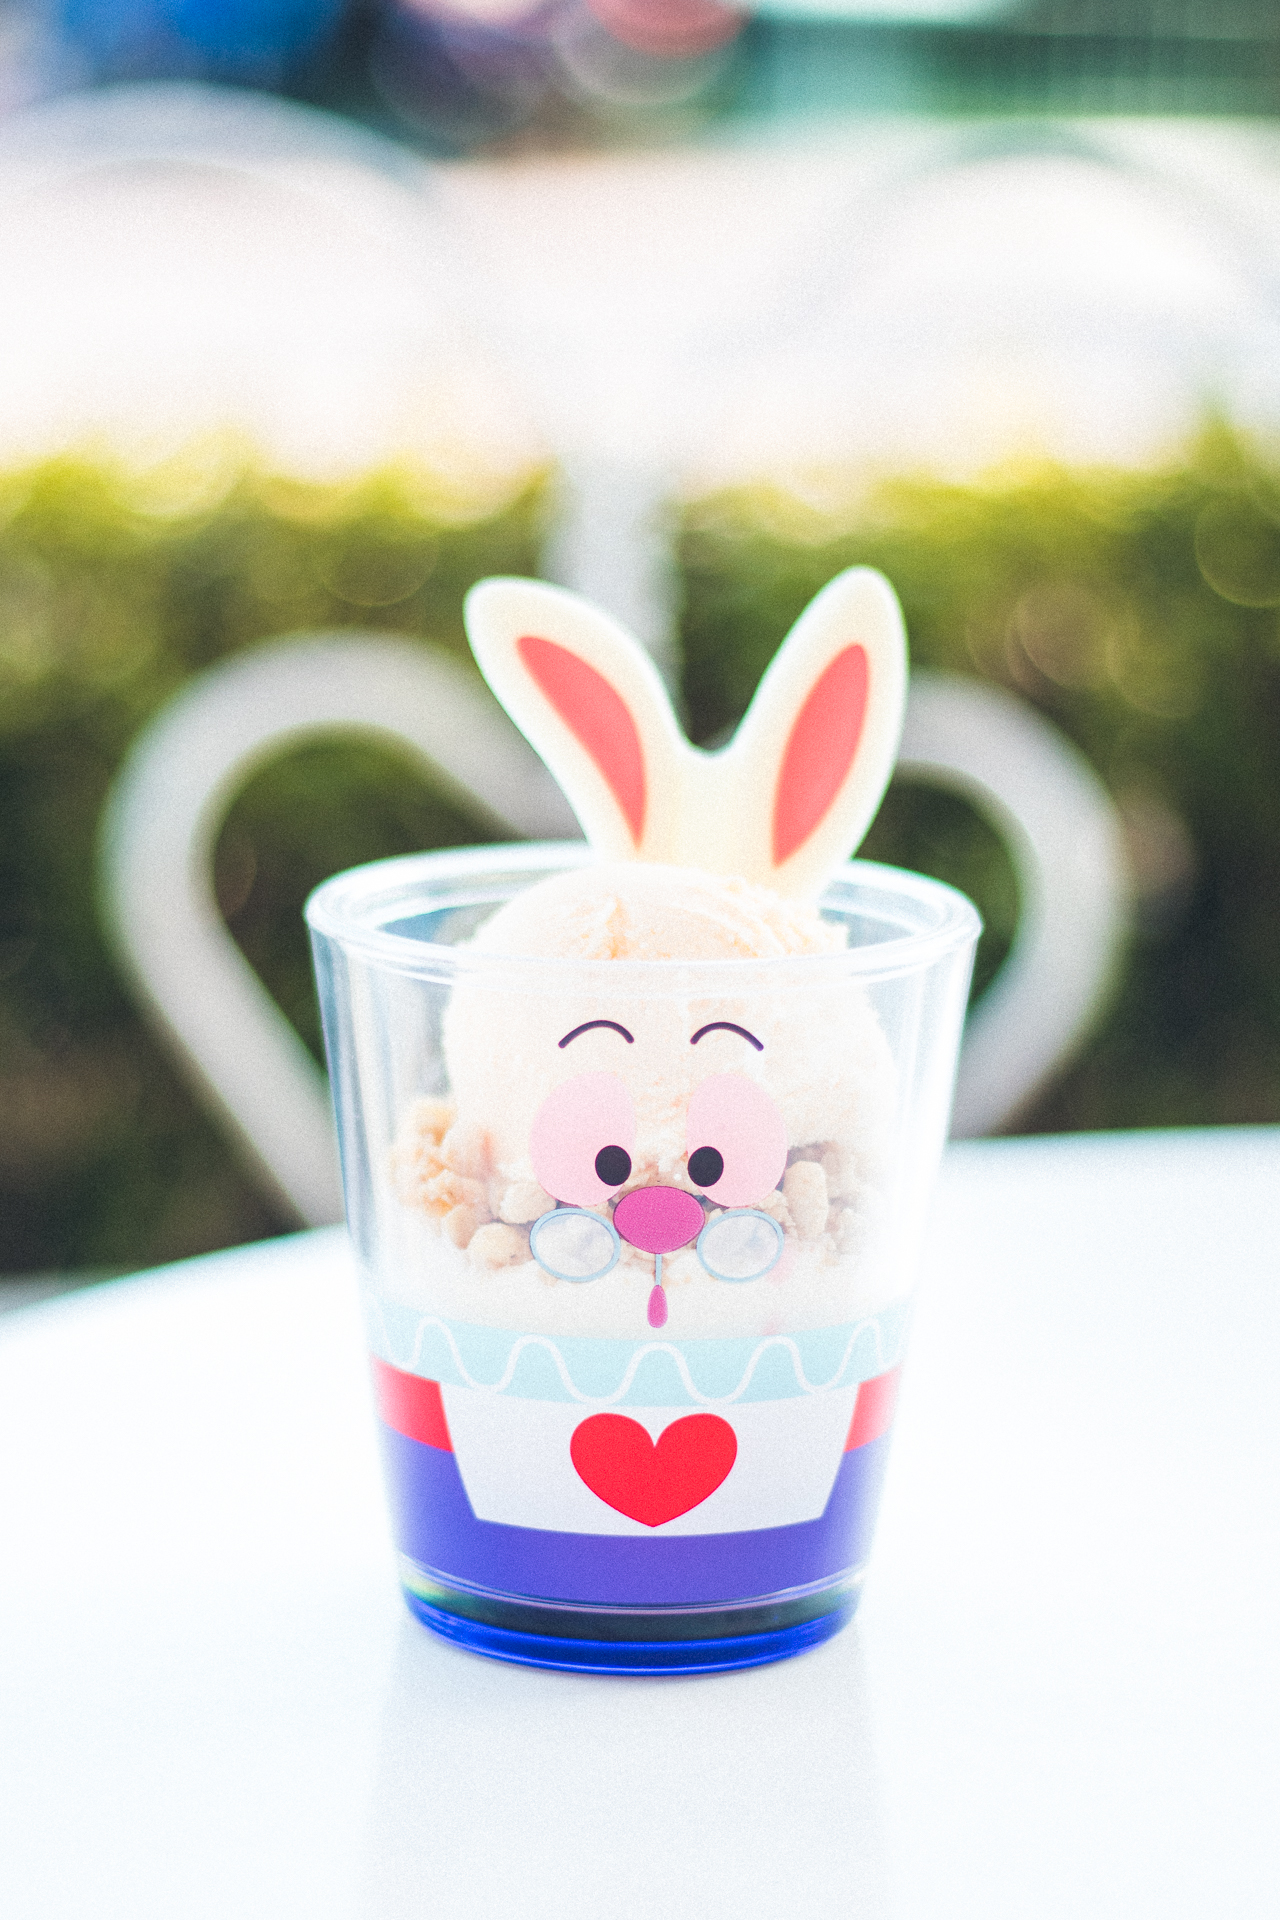 White Rabbit Easter Parfait from Sweet Heart Cafe  (¥860)  Although this is a seasonal treat, parfaits from Sweet Heart Cafe are pretty common. I loved this souvenir plastic cup that was included, which made it worth almost $8.